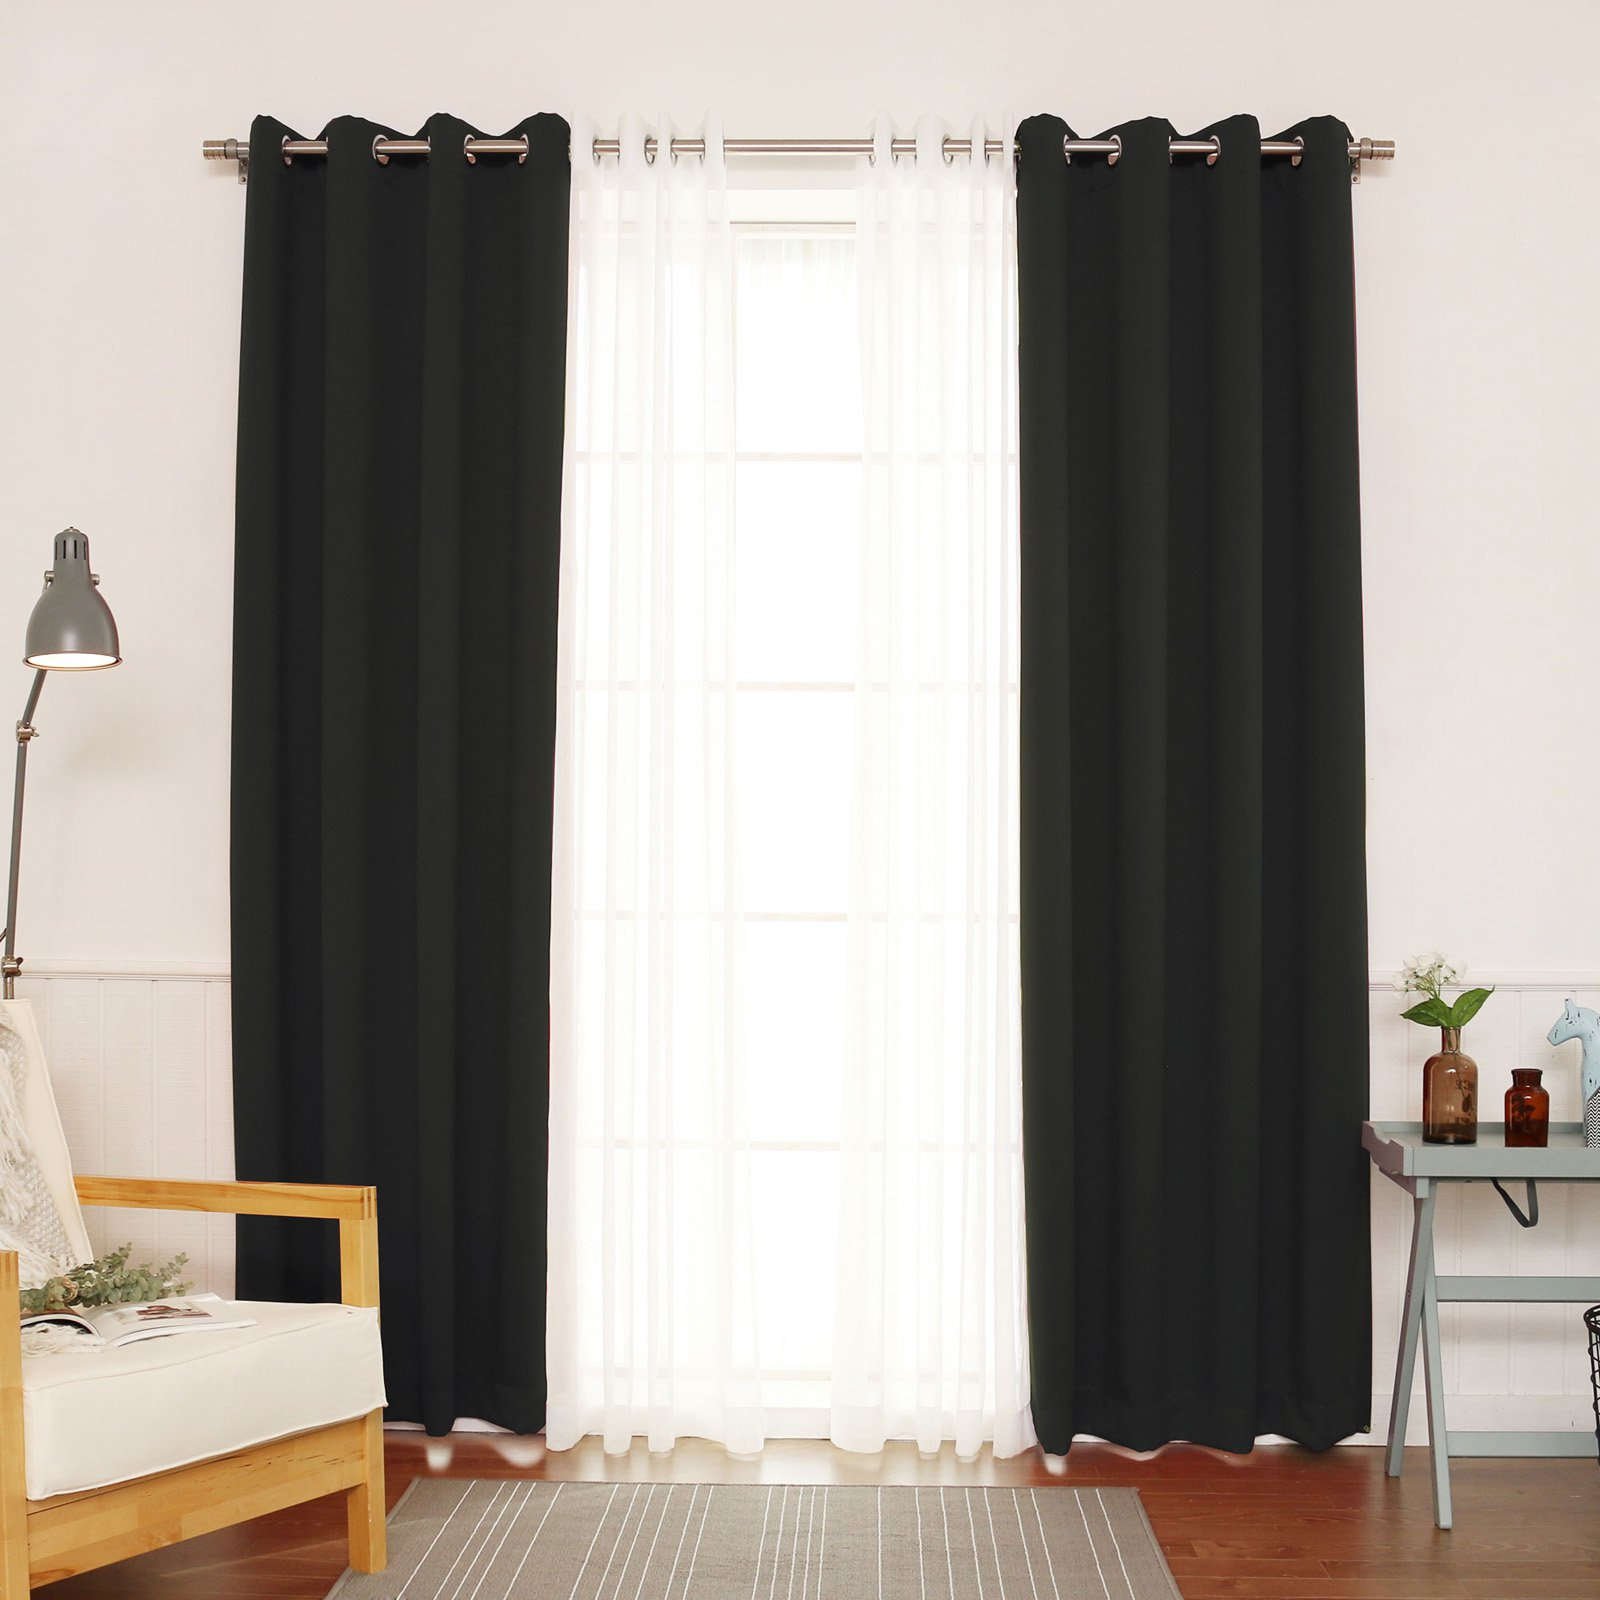 Best Home Fashion 4-Piece Sheer Faux Gauze Linen and Blackout Grommet Curtain Panel Set 52-in W 84-in L